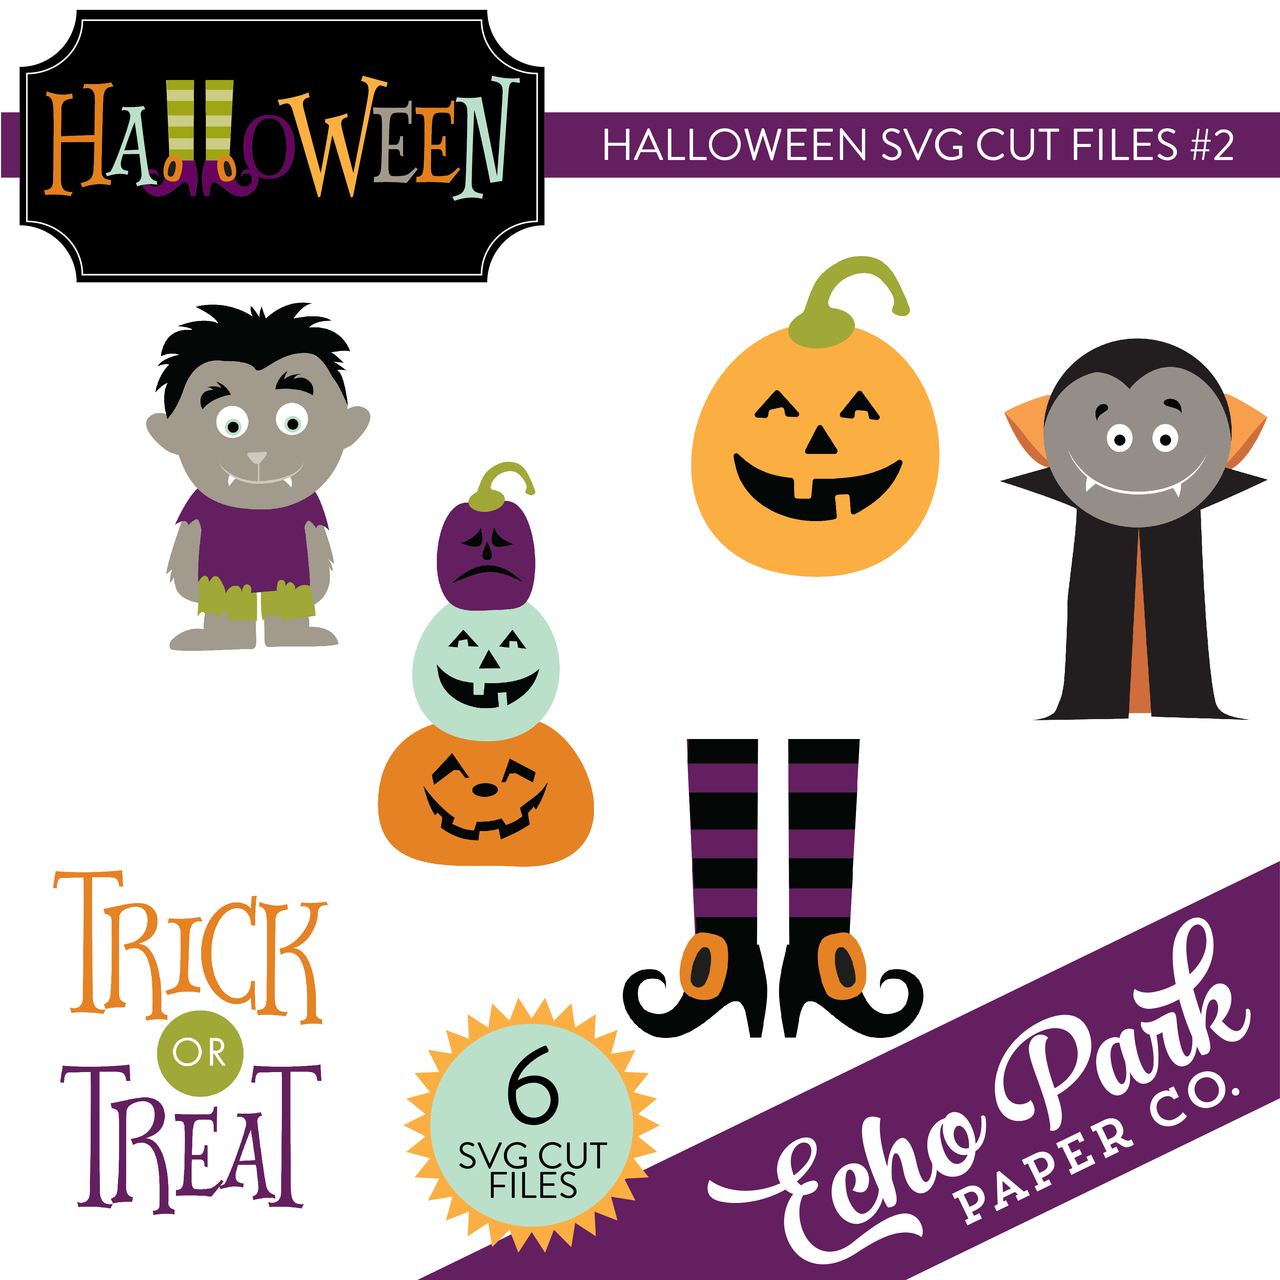 Halloween SVG Cut Files #2